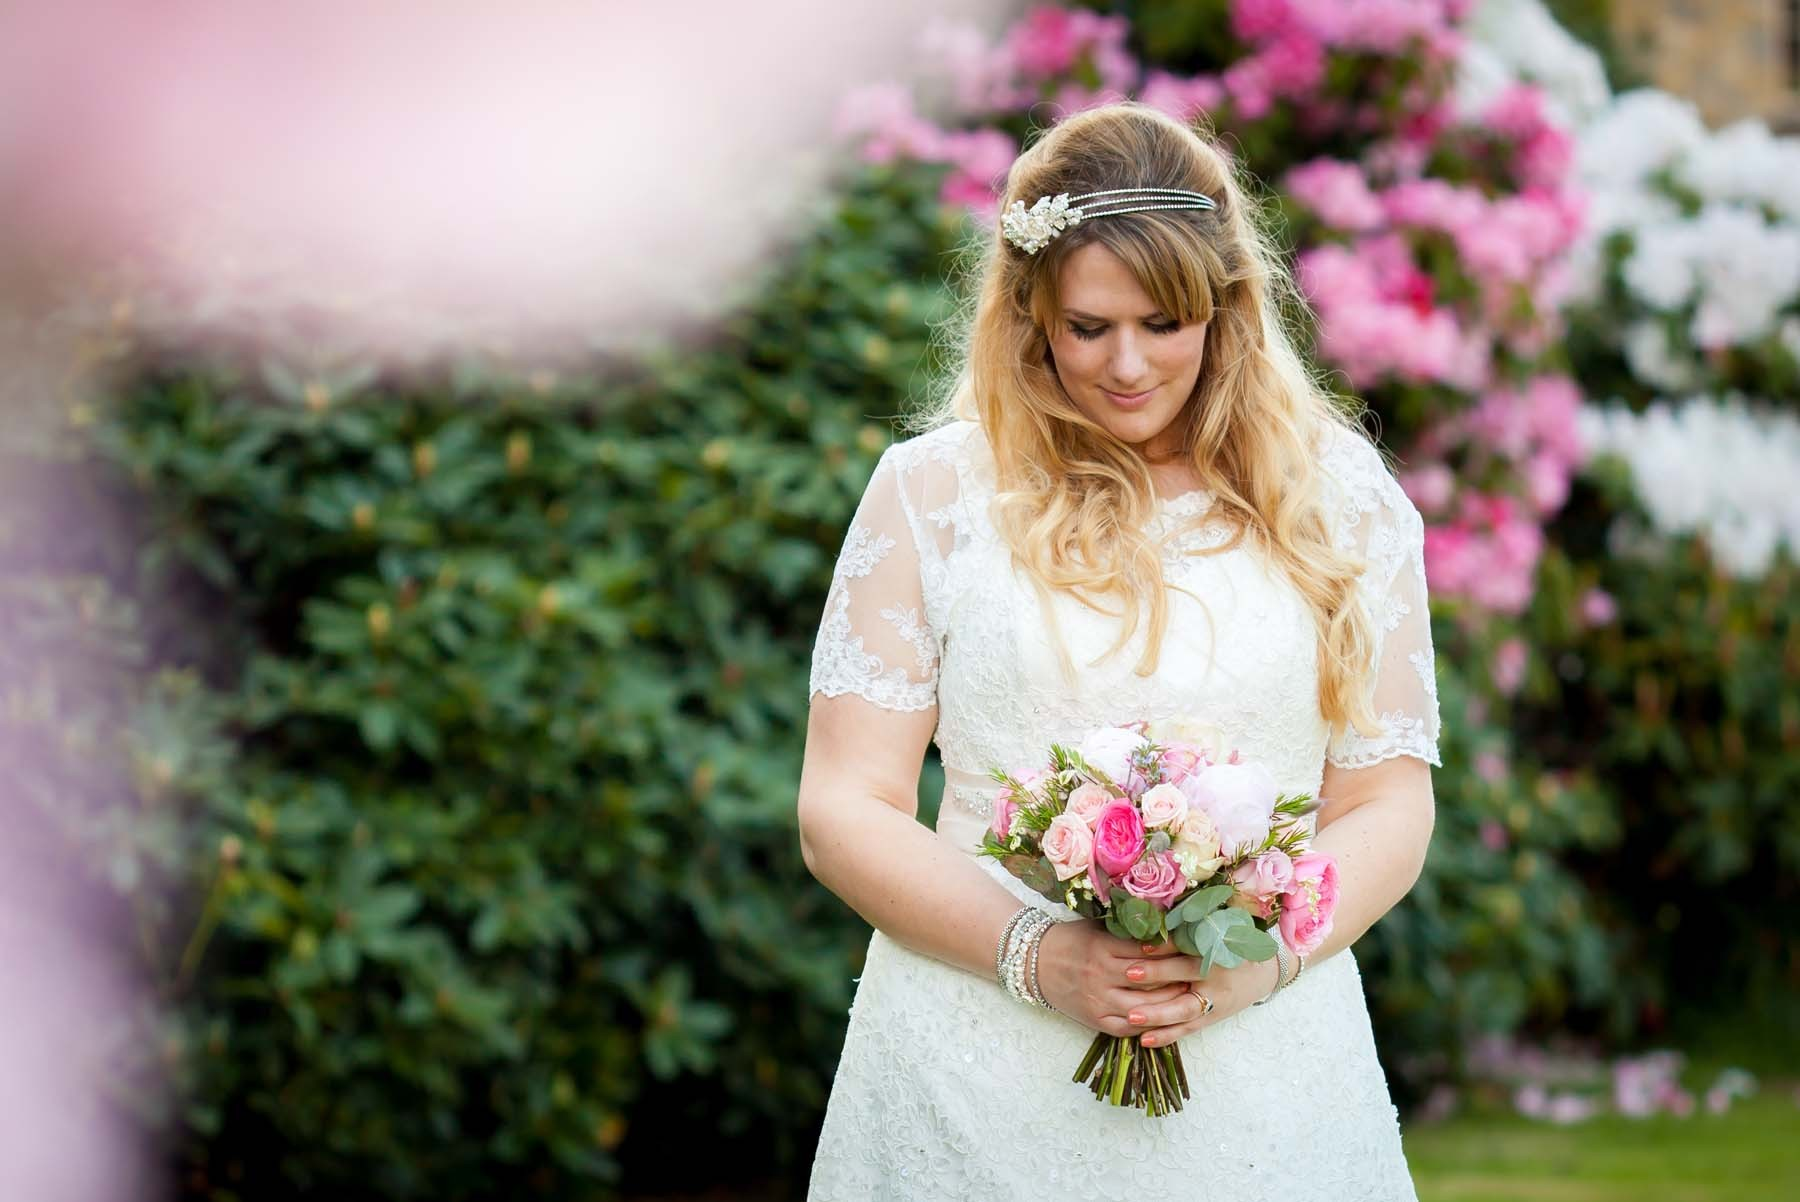 Sussex & Surrey Wedding Photographer - Bride & Groom (22)